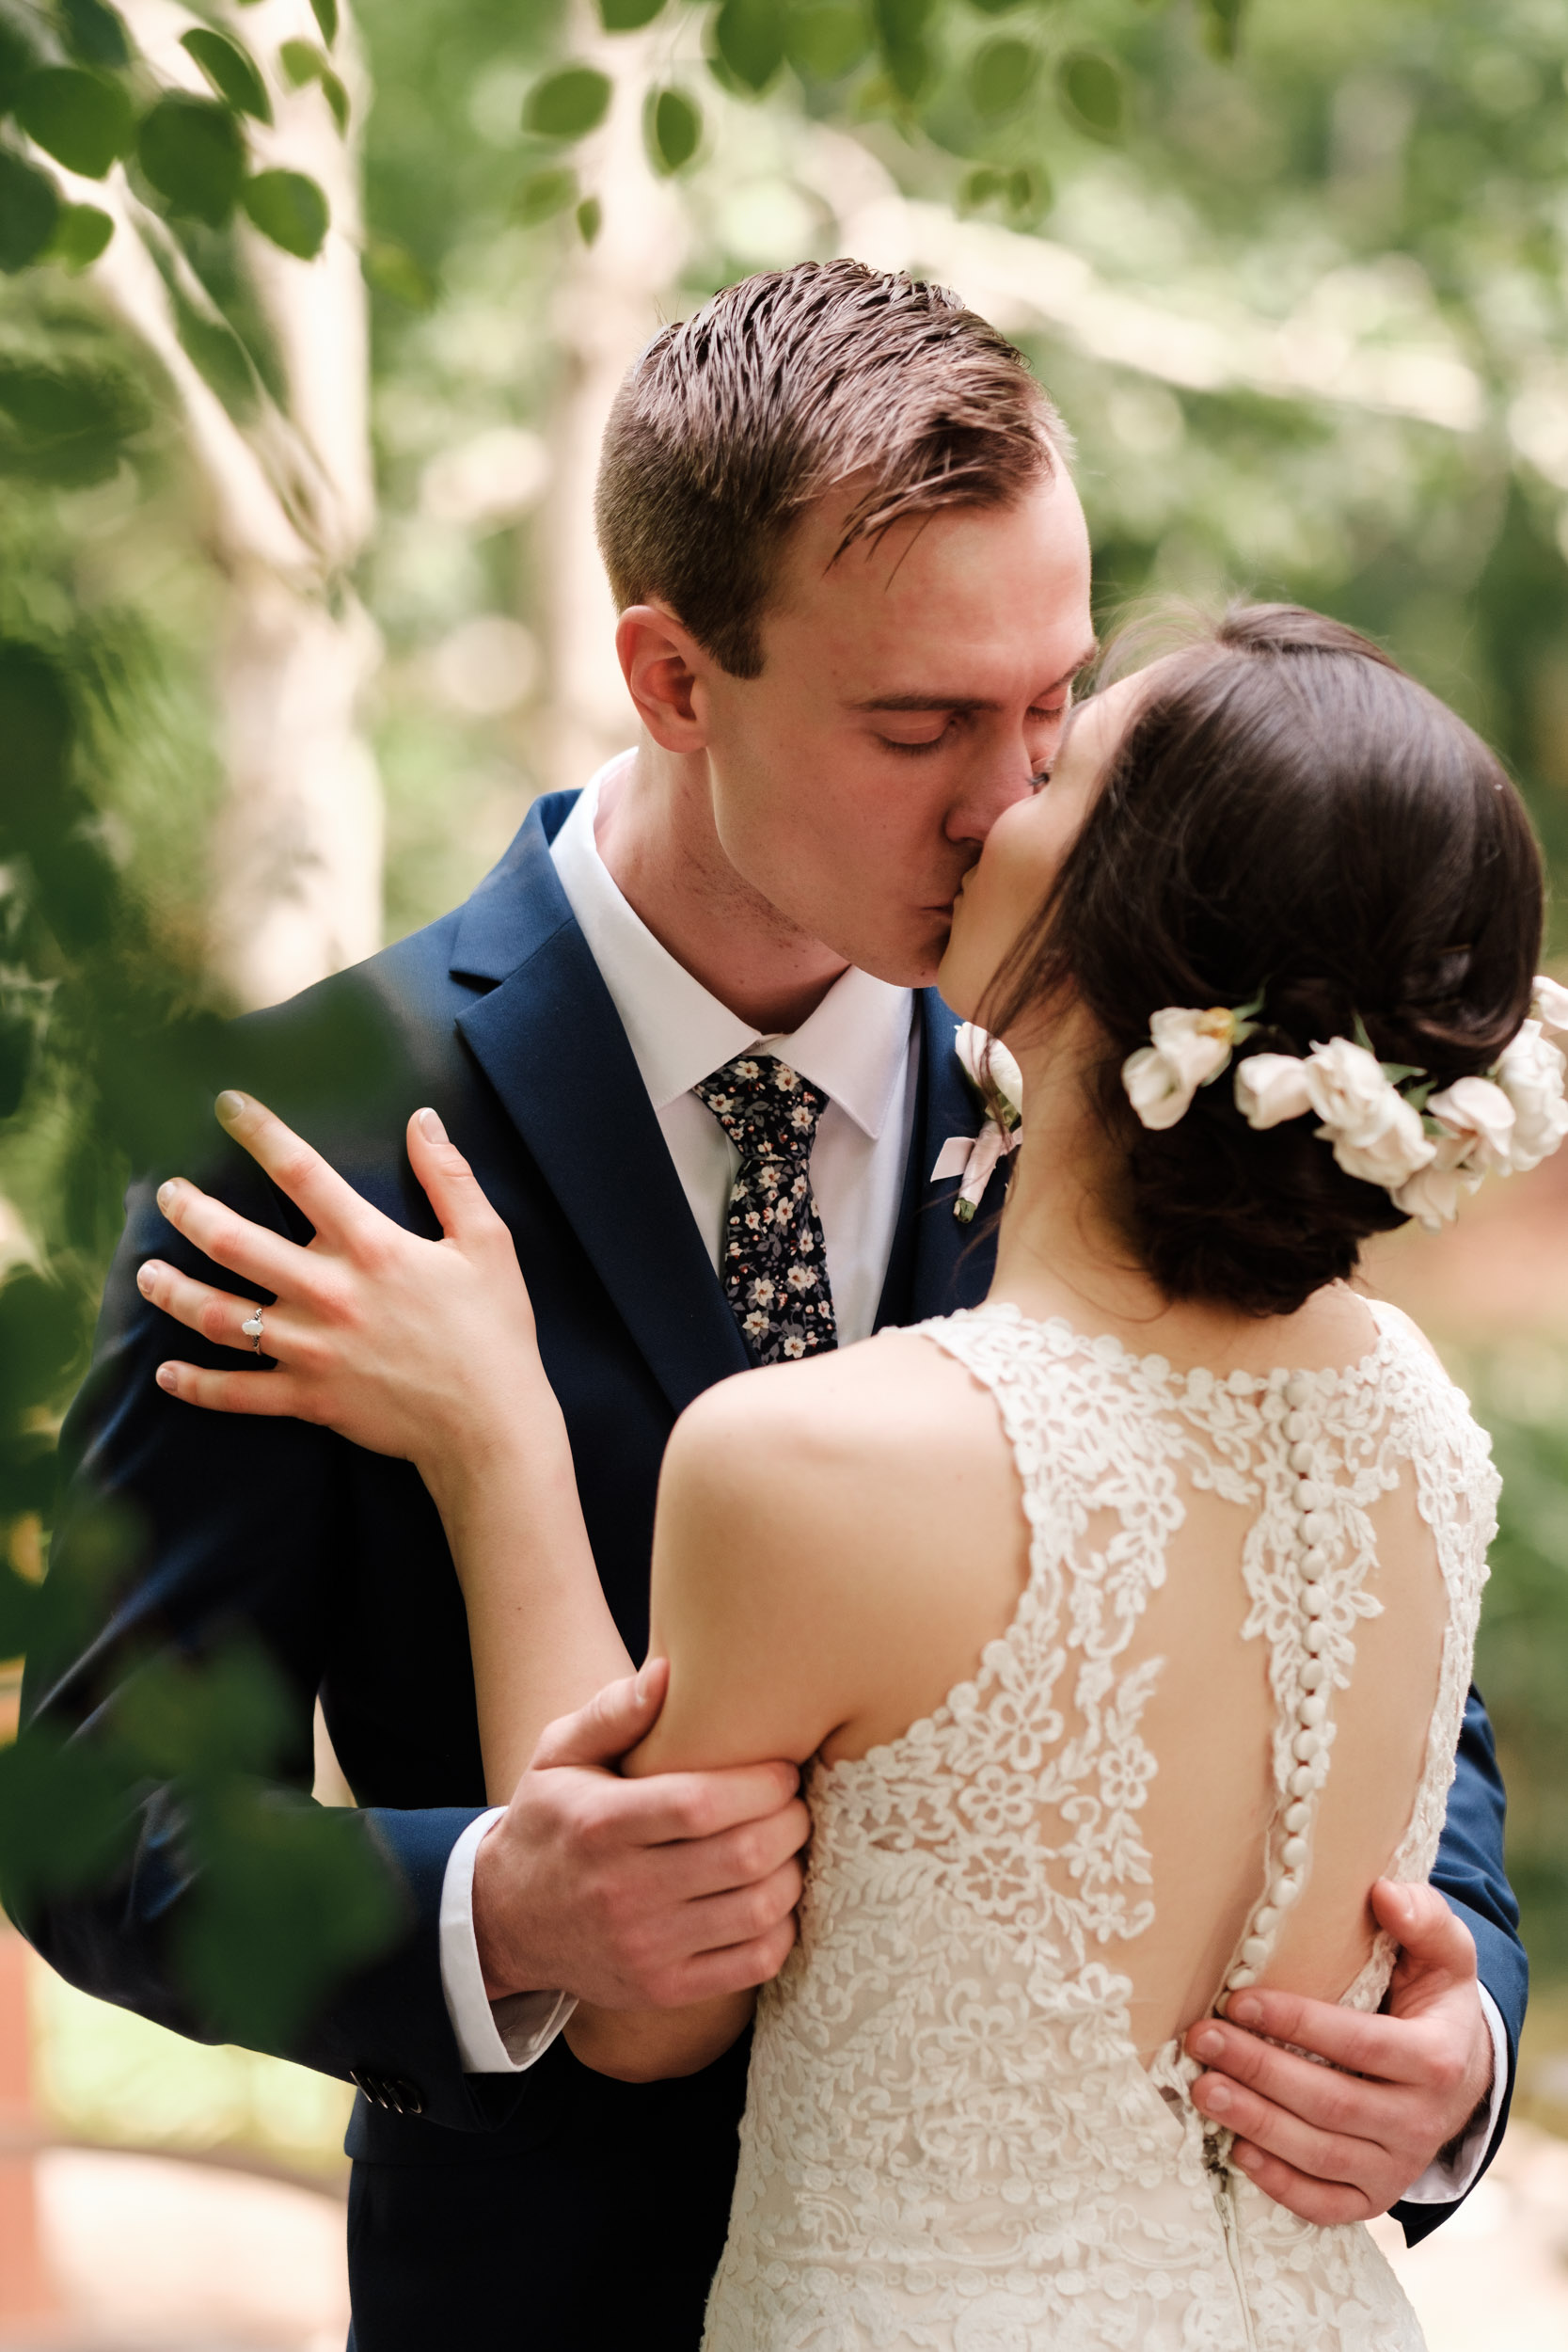 rockford wedding photographer natural first look gardens of woodstock bride floral crown and groom floral tie blue suit laughing